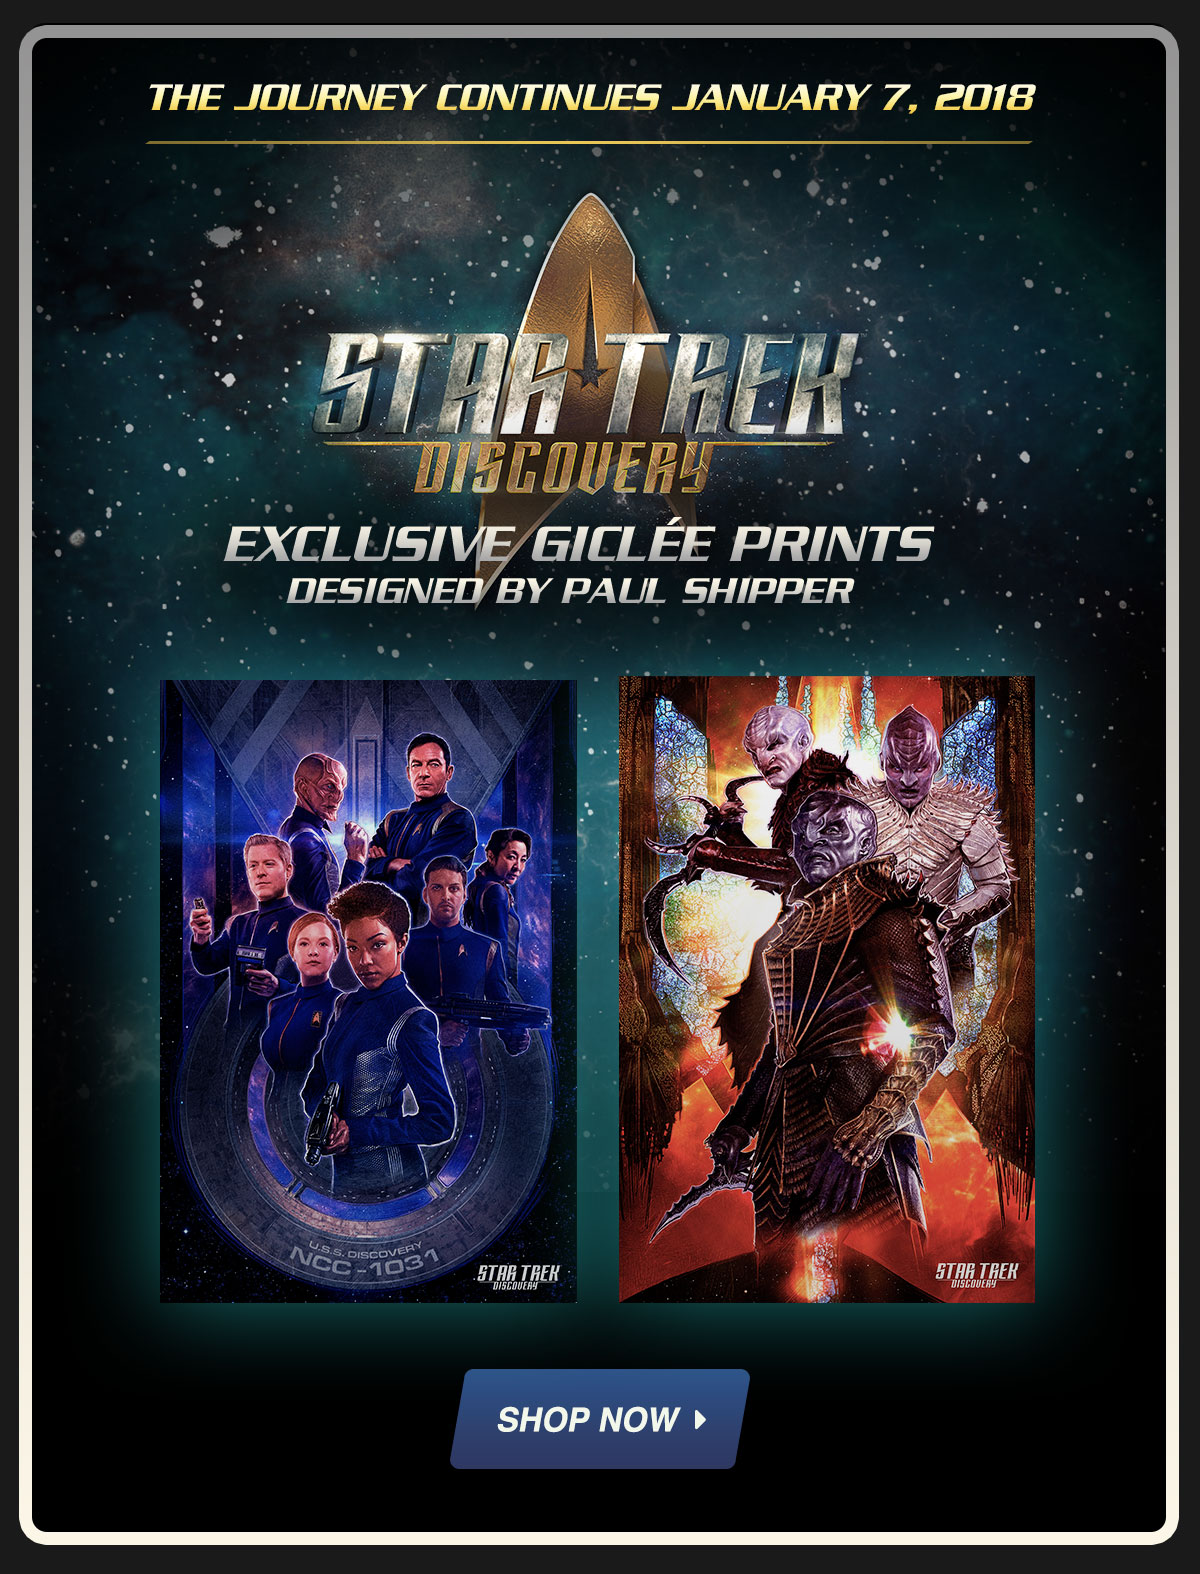 The Journey Continues January 7 2018 Star Trek Discovery Exclusive Posters Designed By Paul